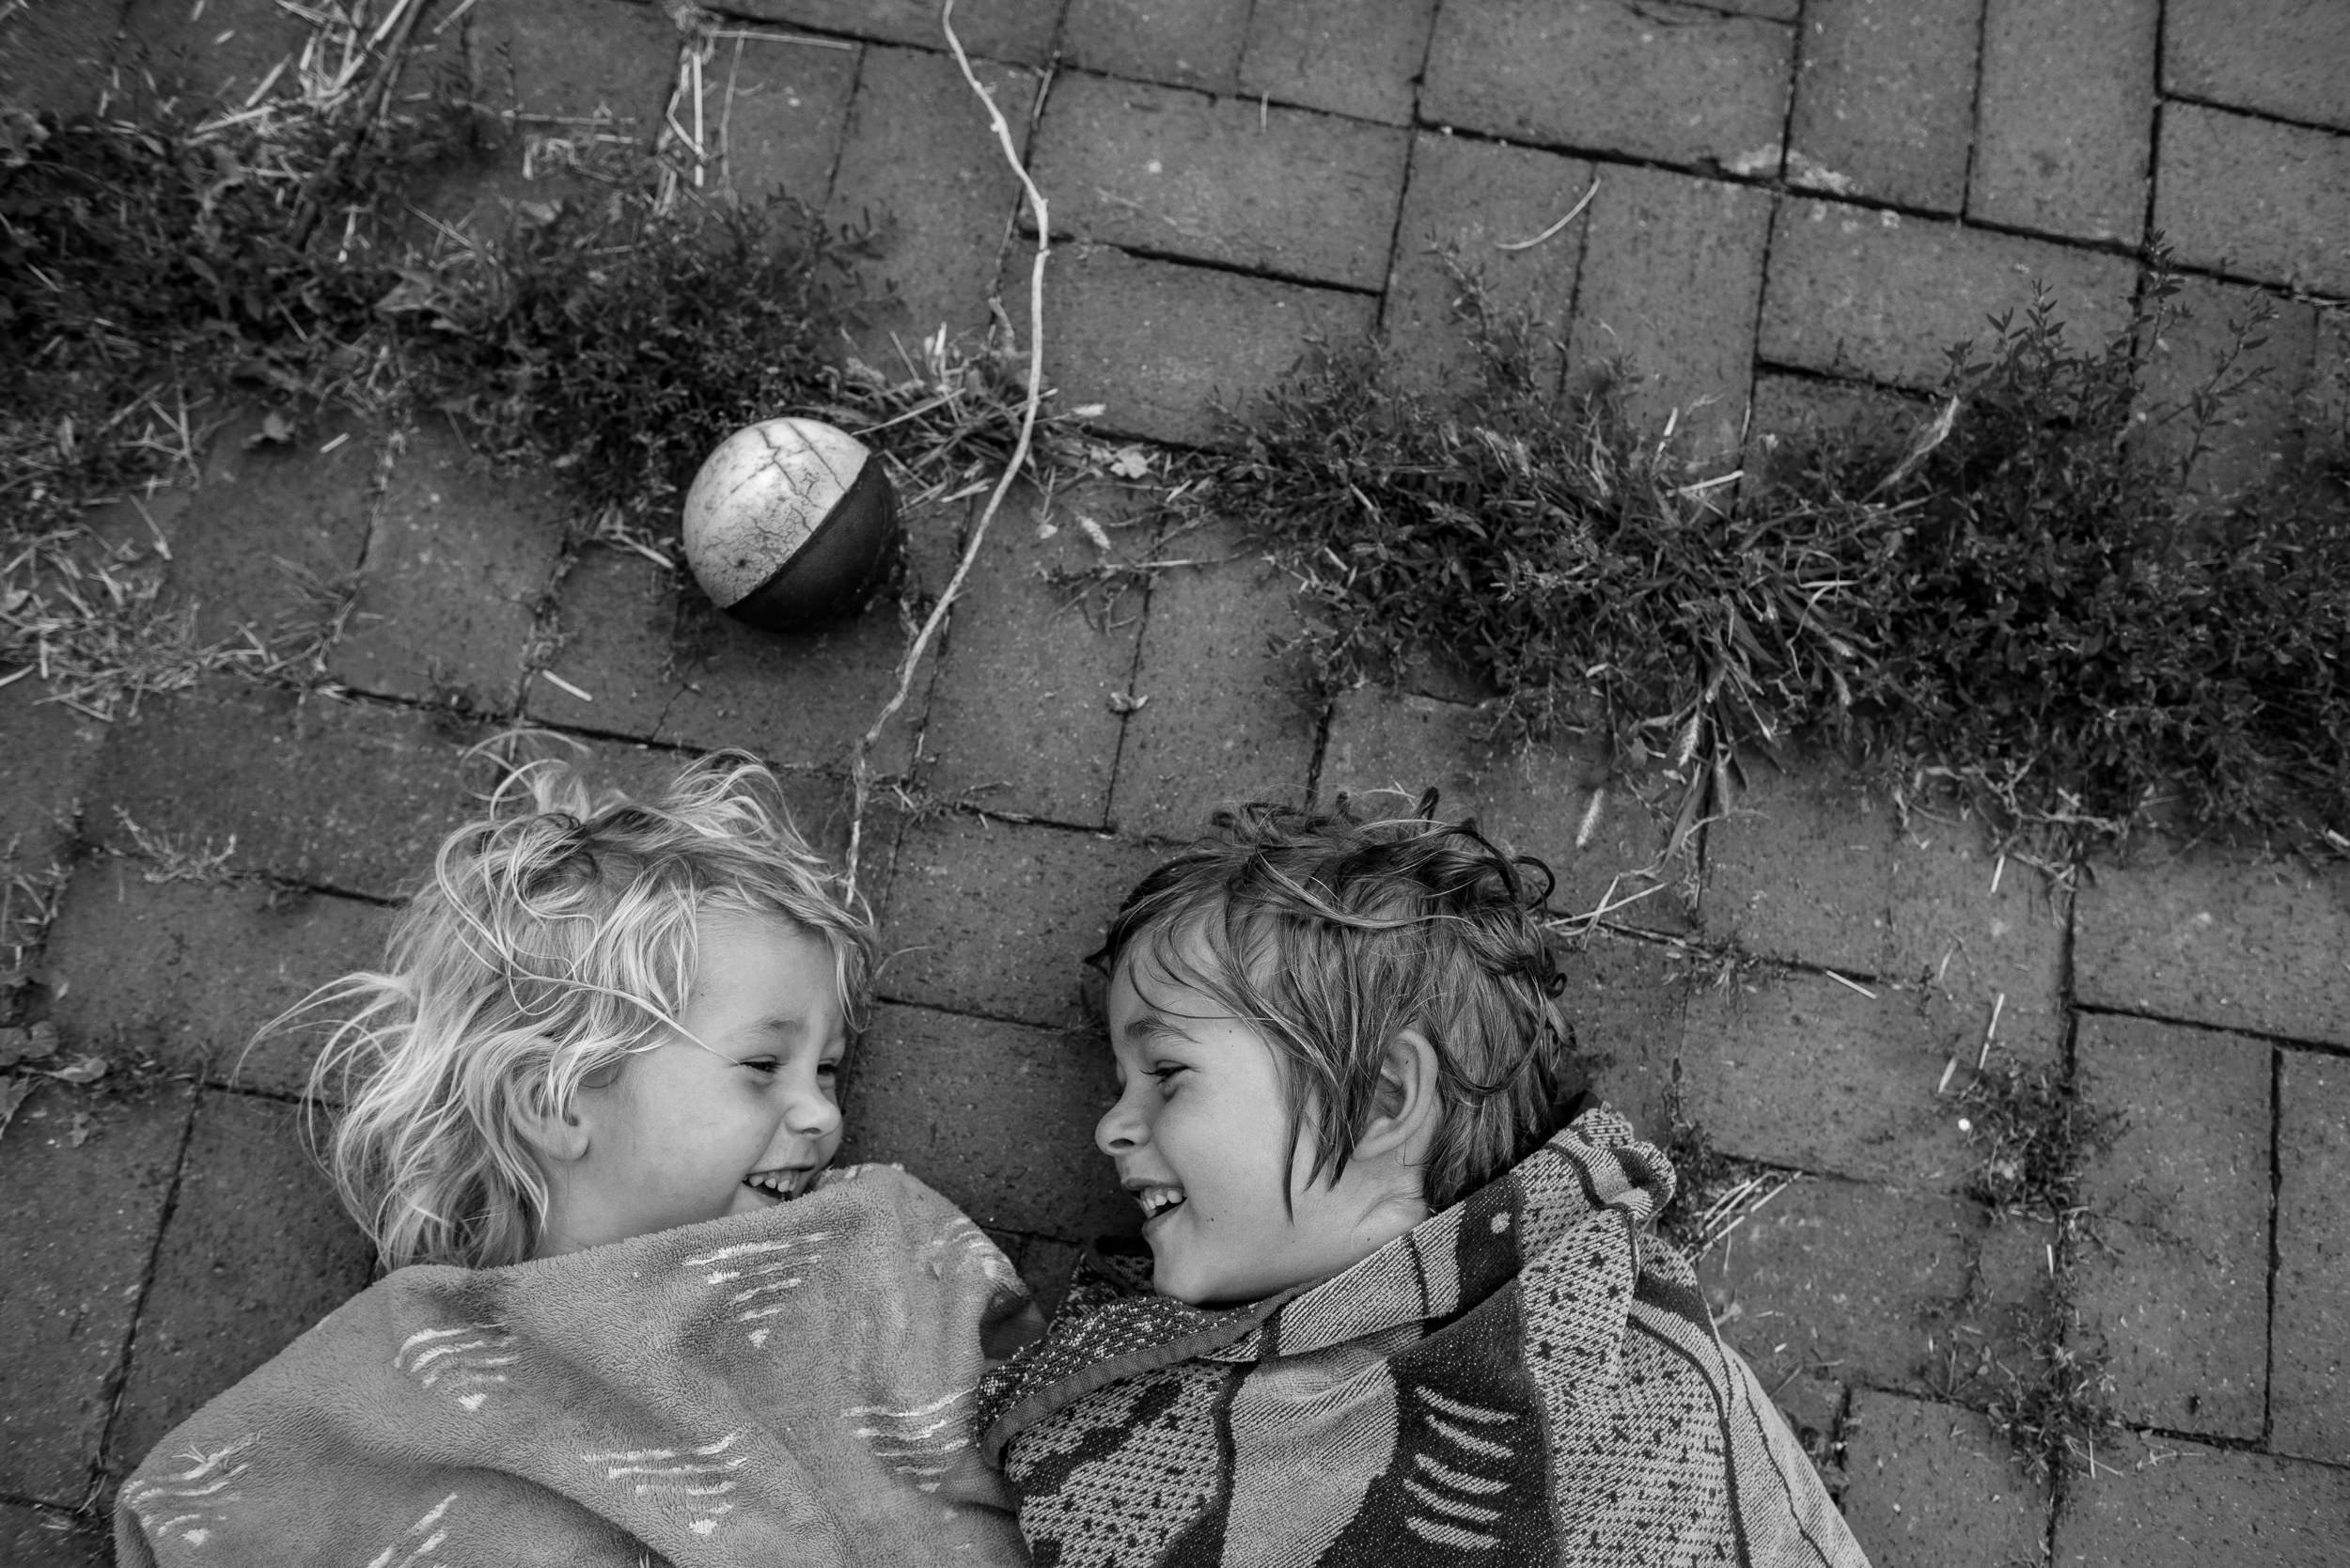 Blog - The Pen & Camera - Gratitude Journal, Inspirational, Friendship, Colfax, Writing, Motherhood, Denver, Colorado - Molly Rees Photo - Black and White Documentary Childhood Photography - children laughing on bricks by M. Menschel